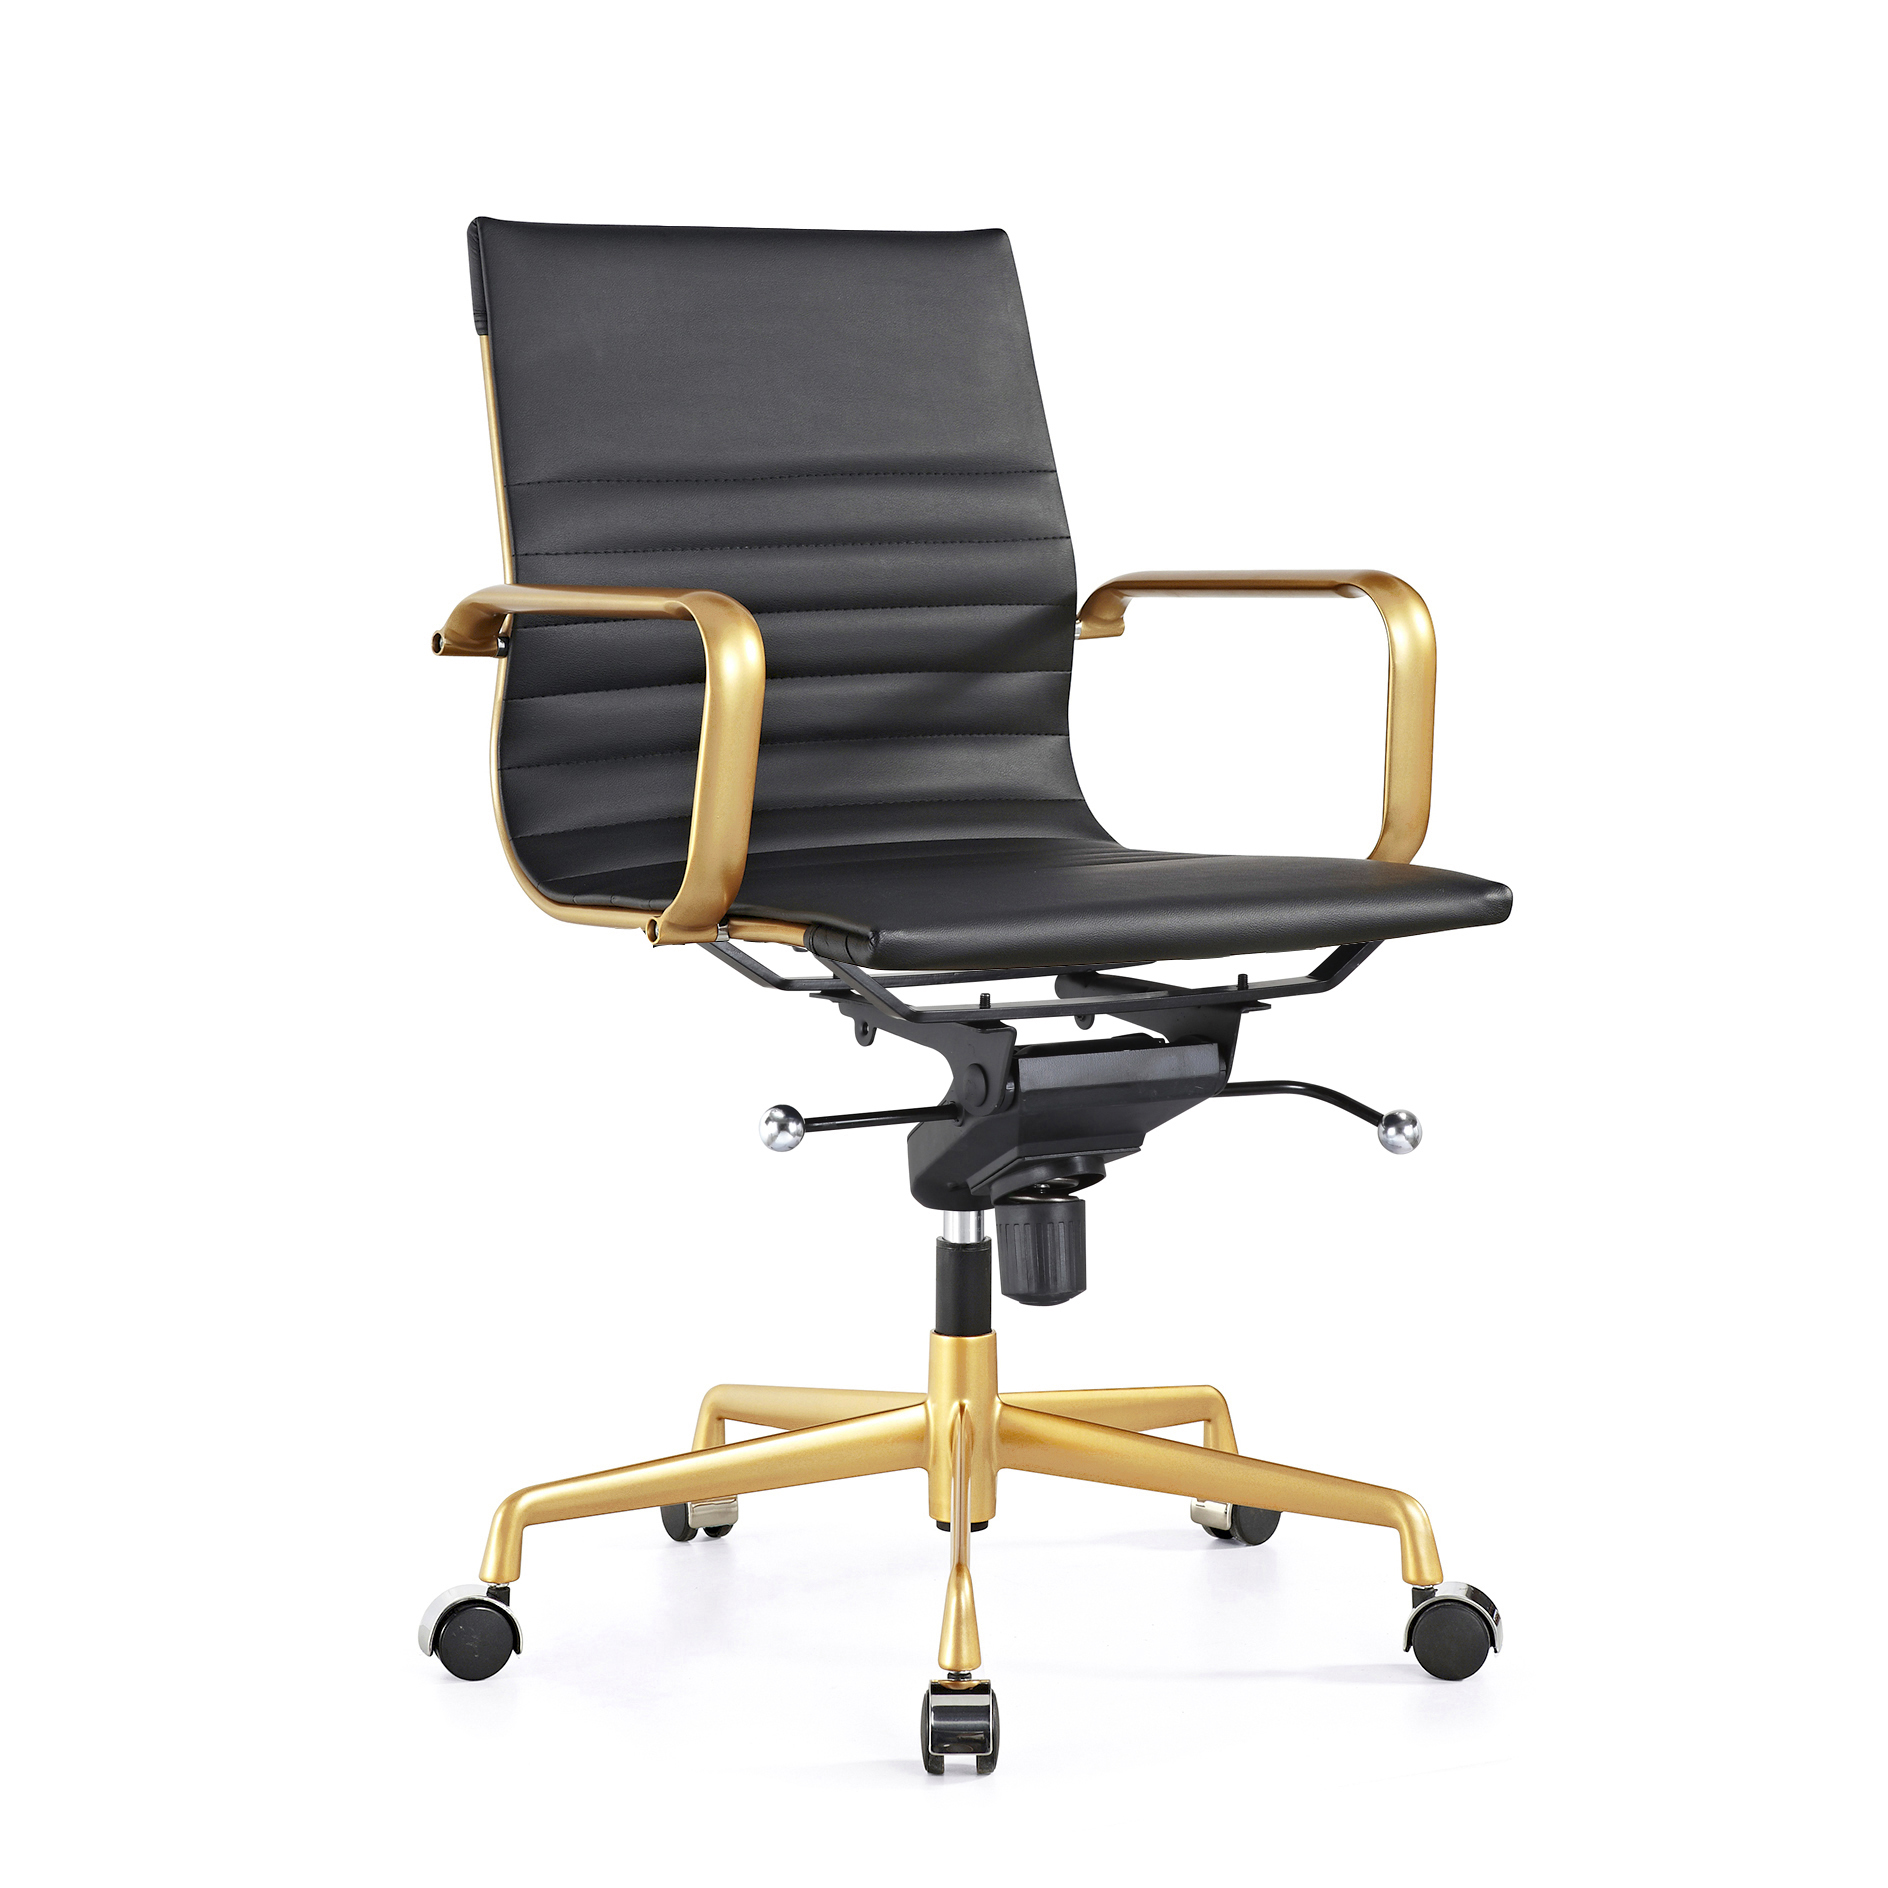 Design Lab MN LS-0009-BLKGLD Decade Black Gold Office Chair Set of 2